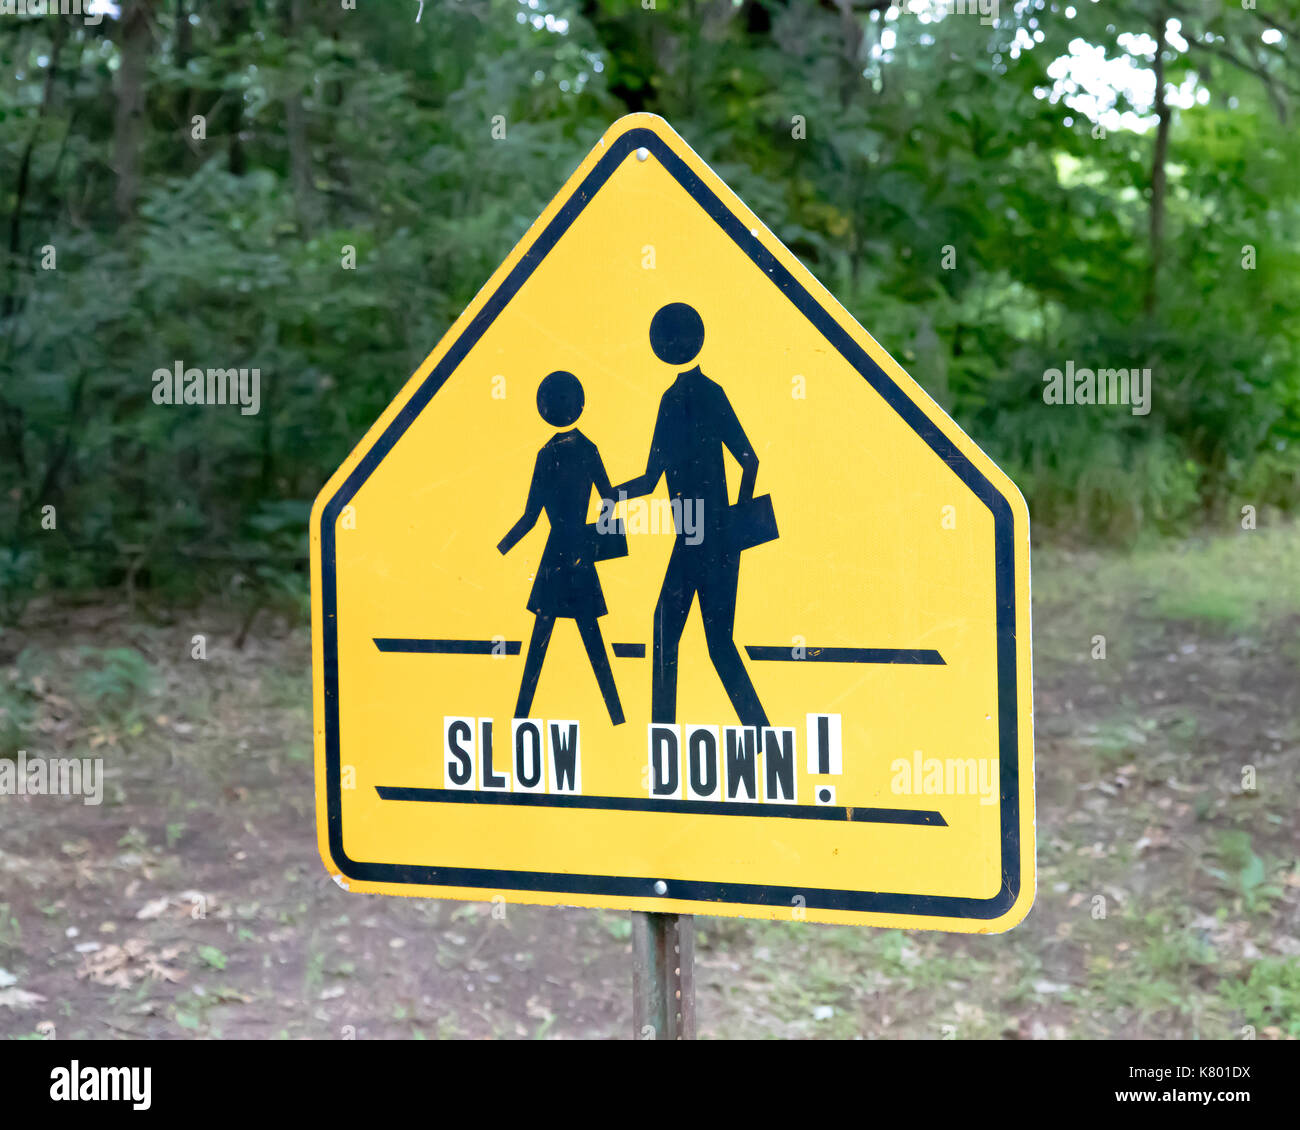 School crossing sign with slow down lettering - Stock Image